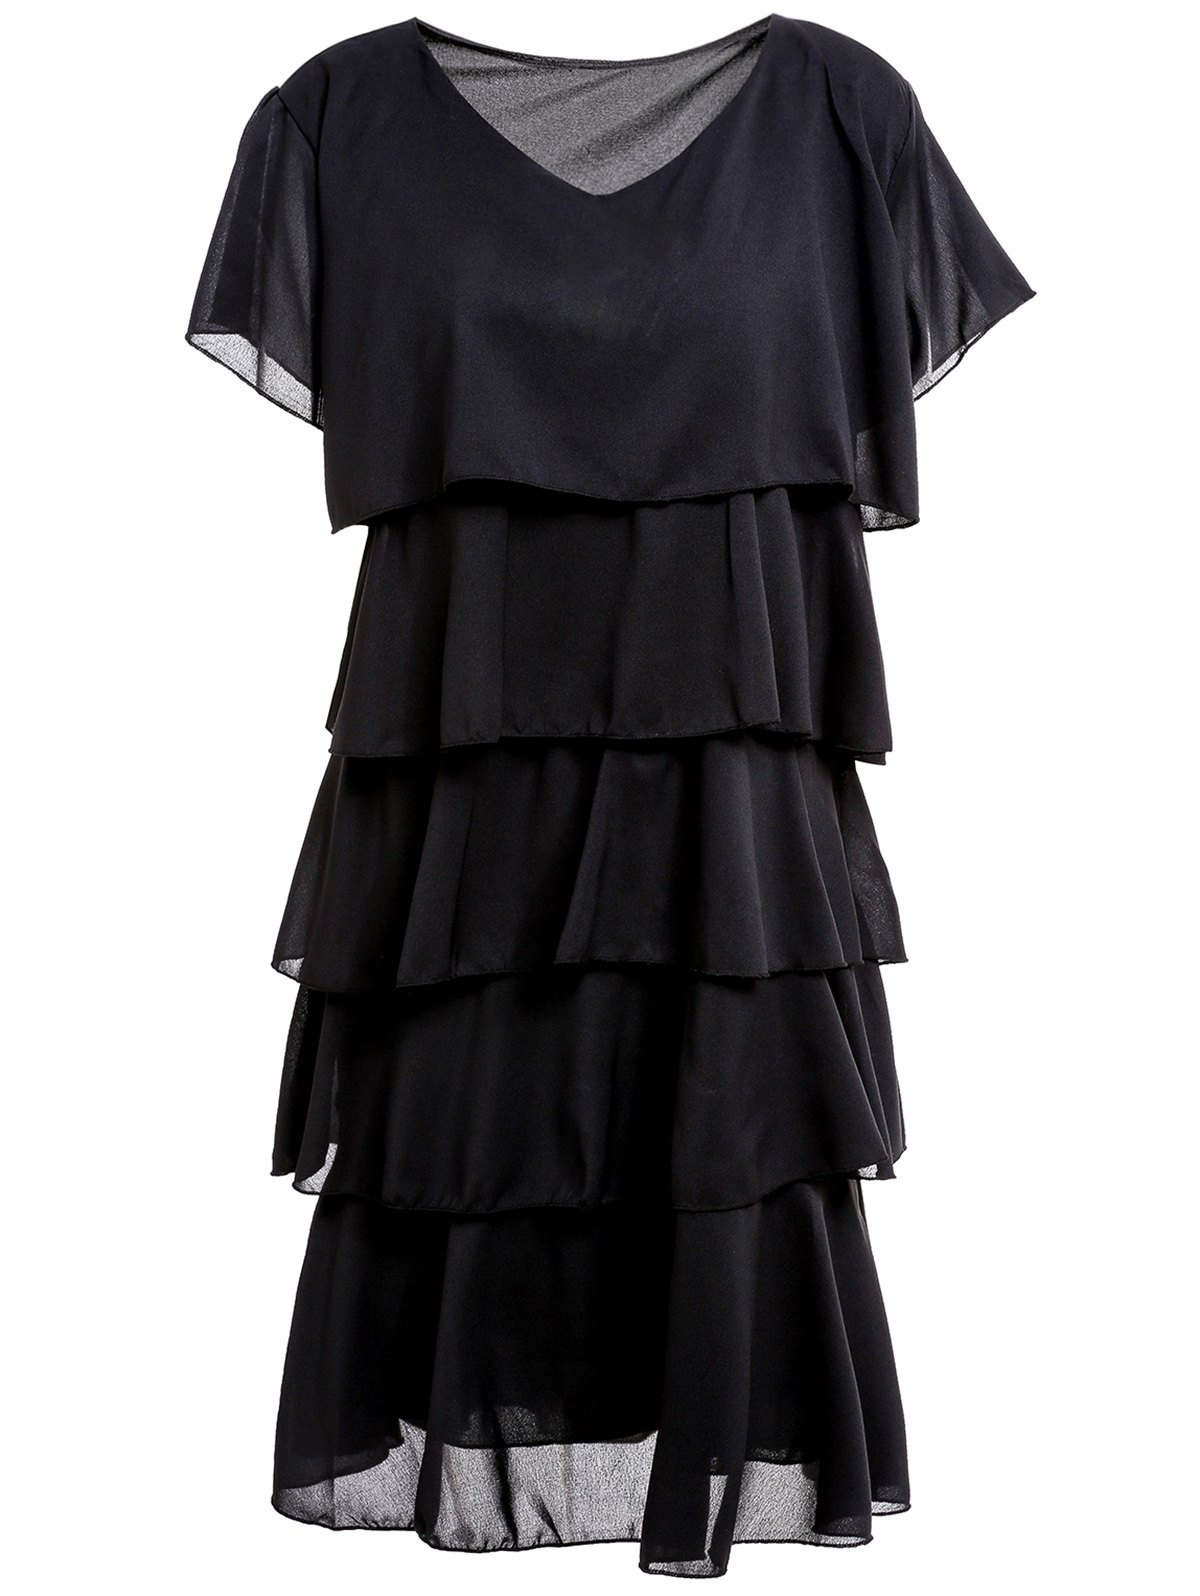 Stylish Scoop Collar Short Sleeve Pure Color Layered Women's Dress - BLACK XL